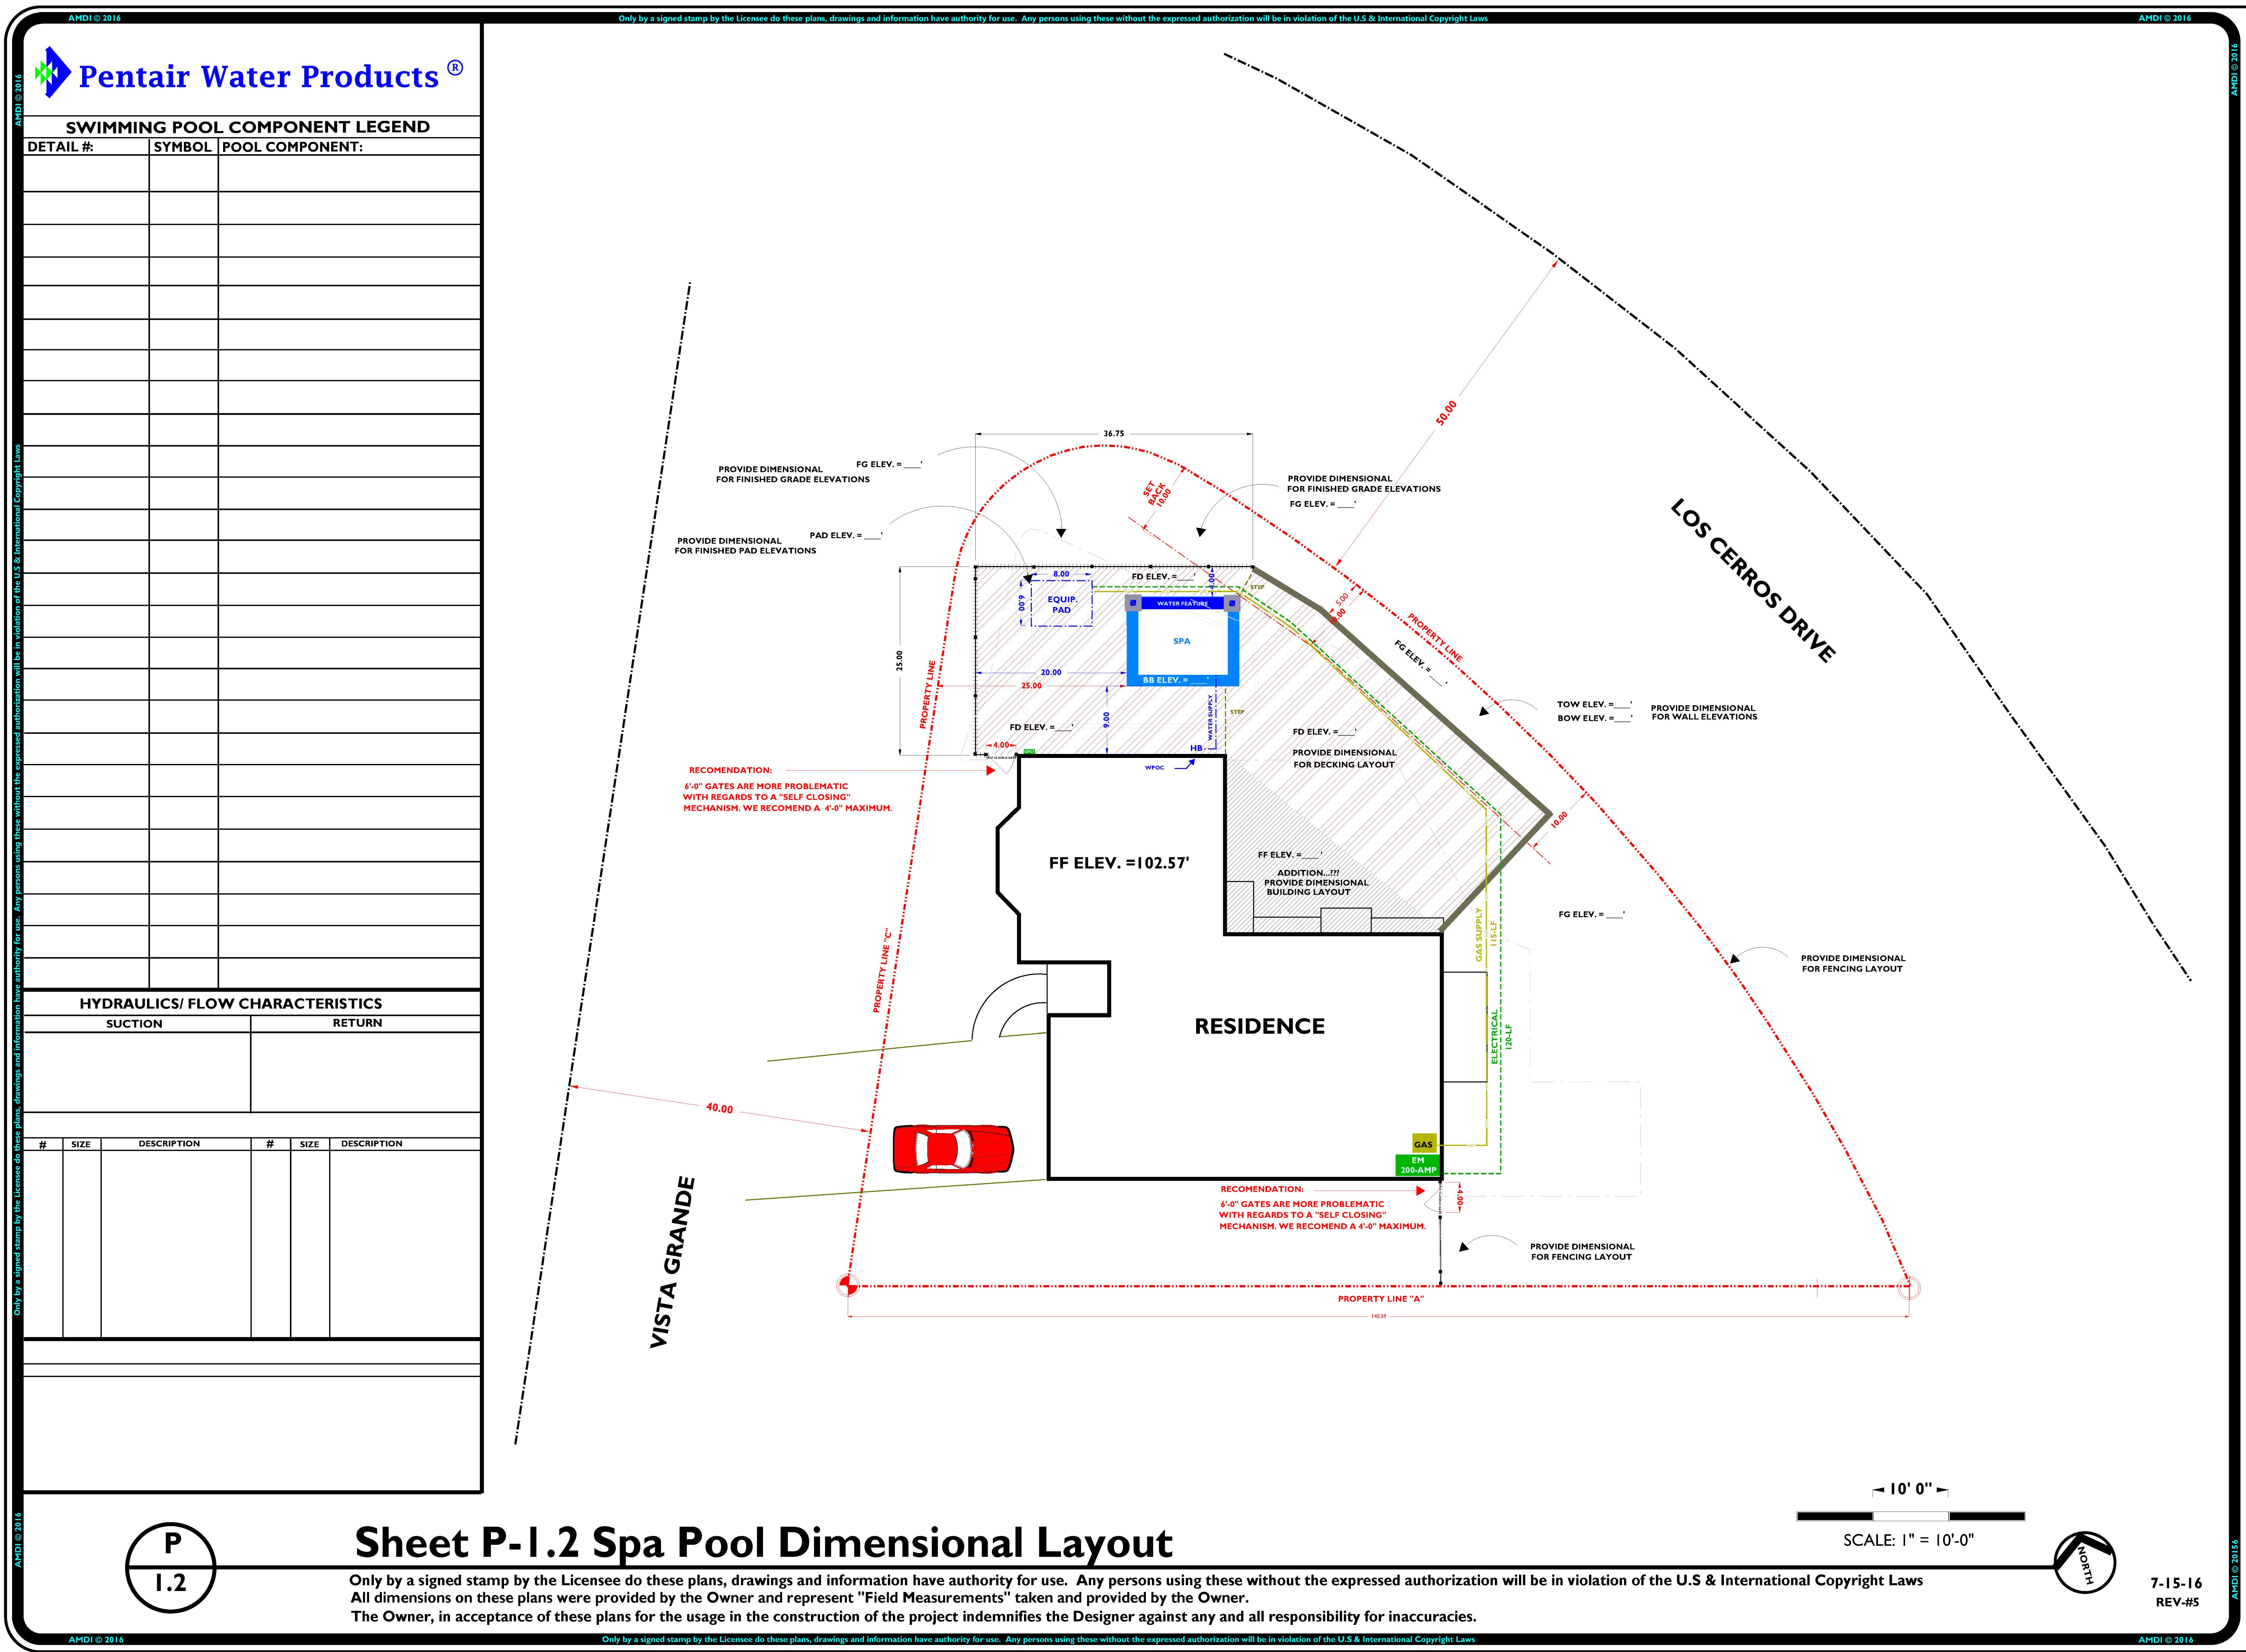 PRELIMINARY SITE PLAN - SWIMMING POOL LAYOUT - REV-5